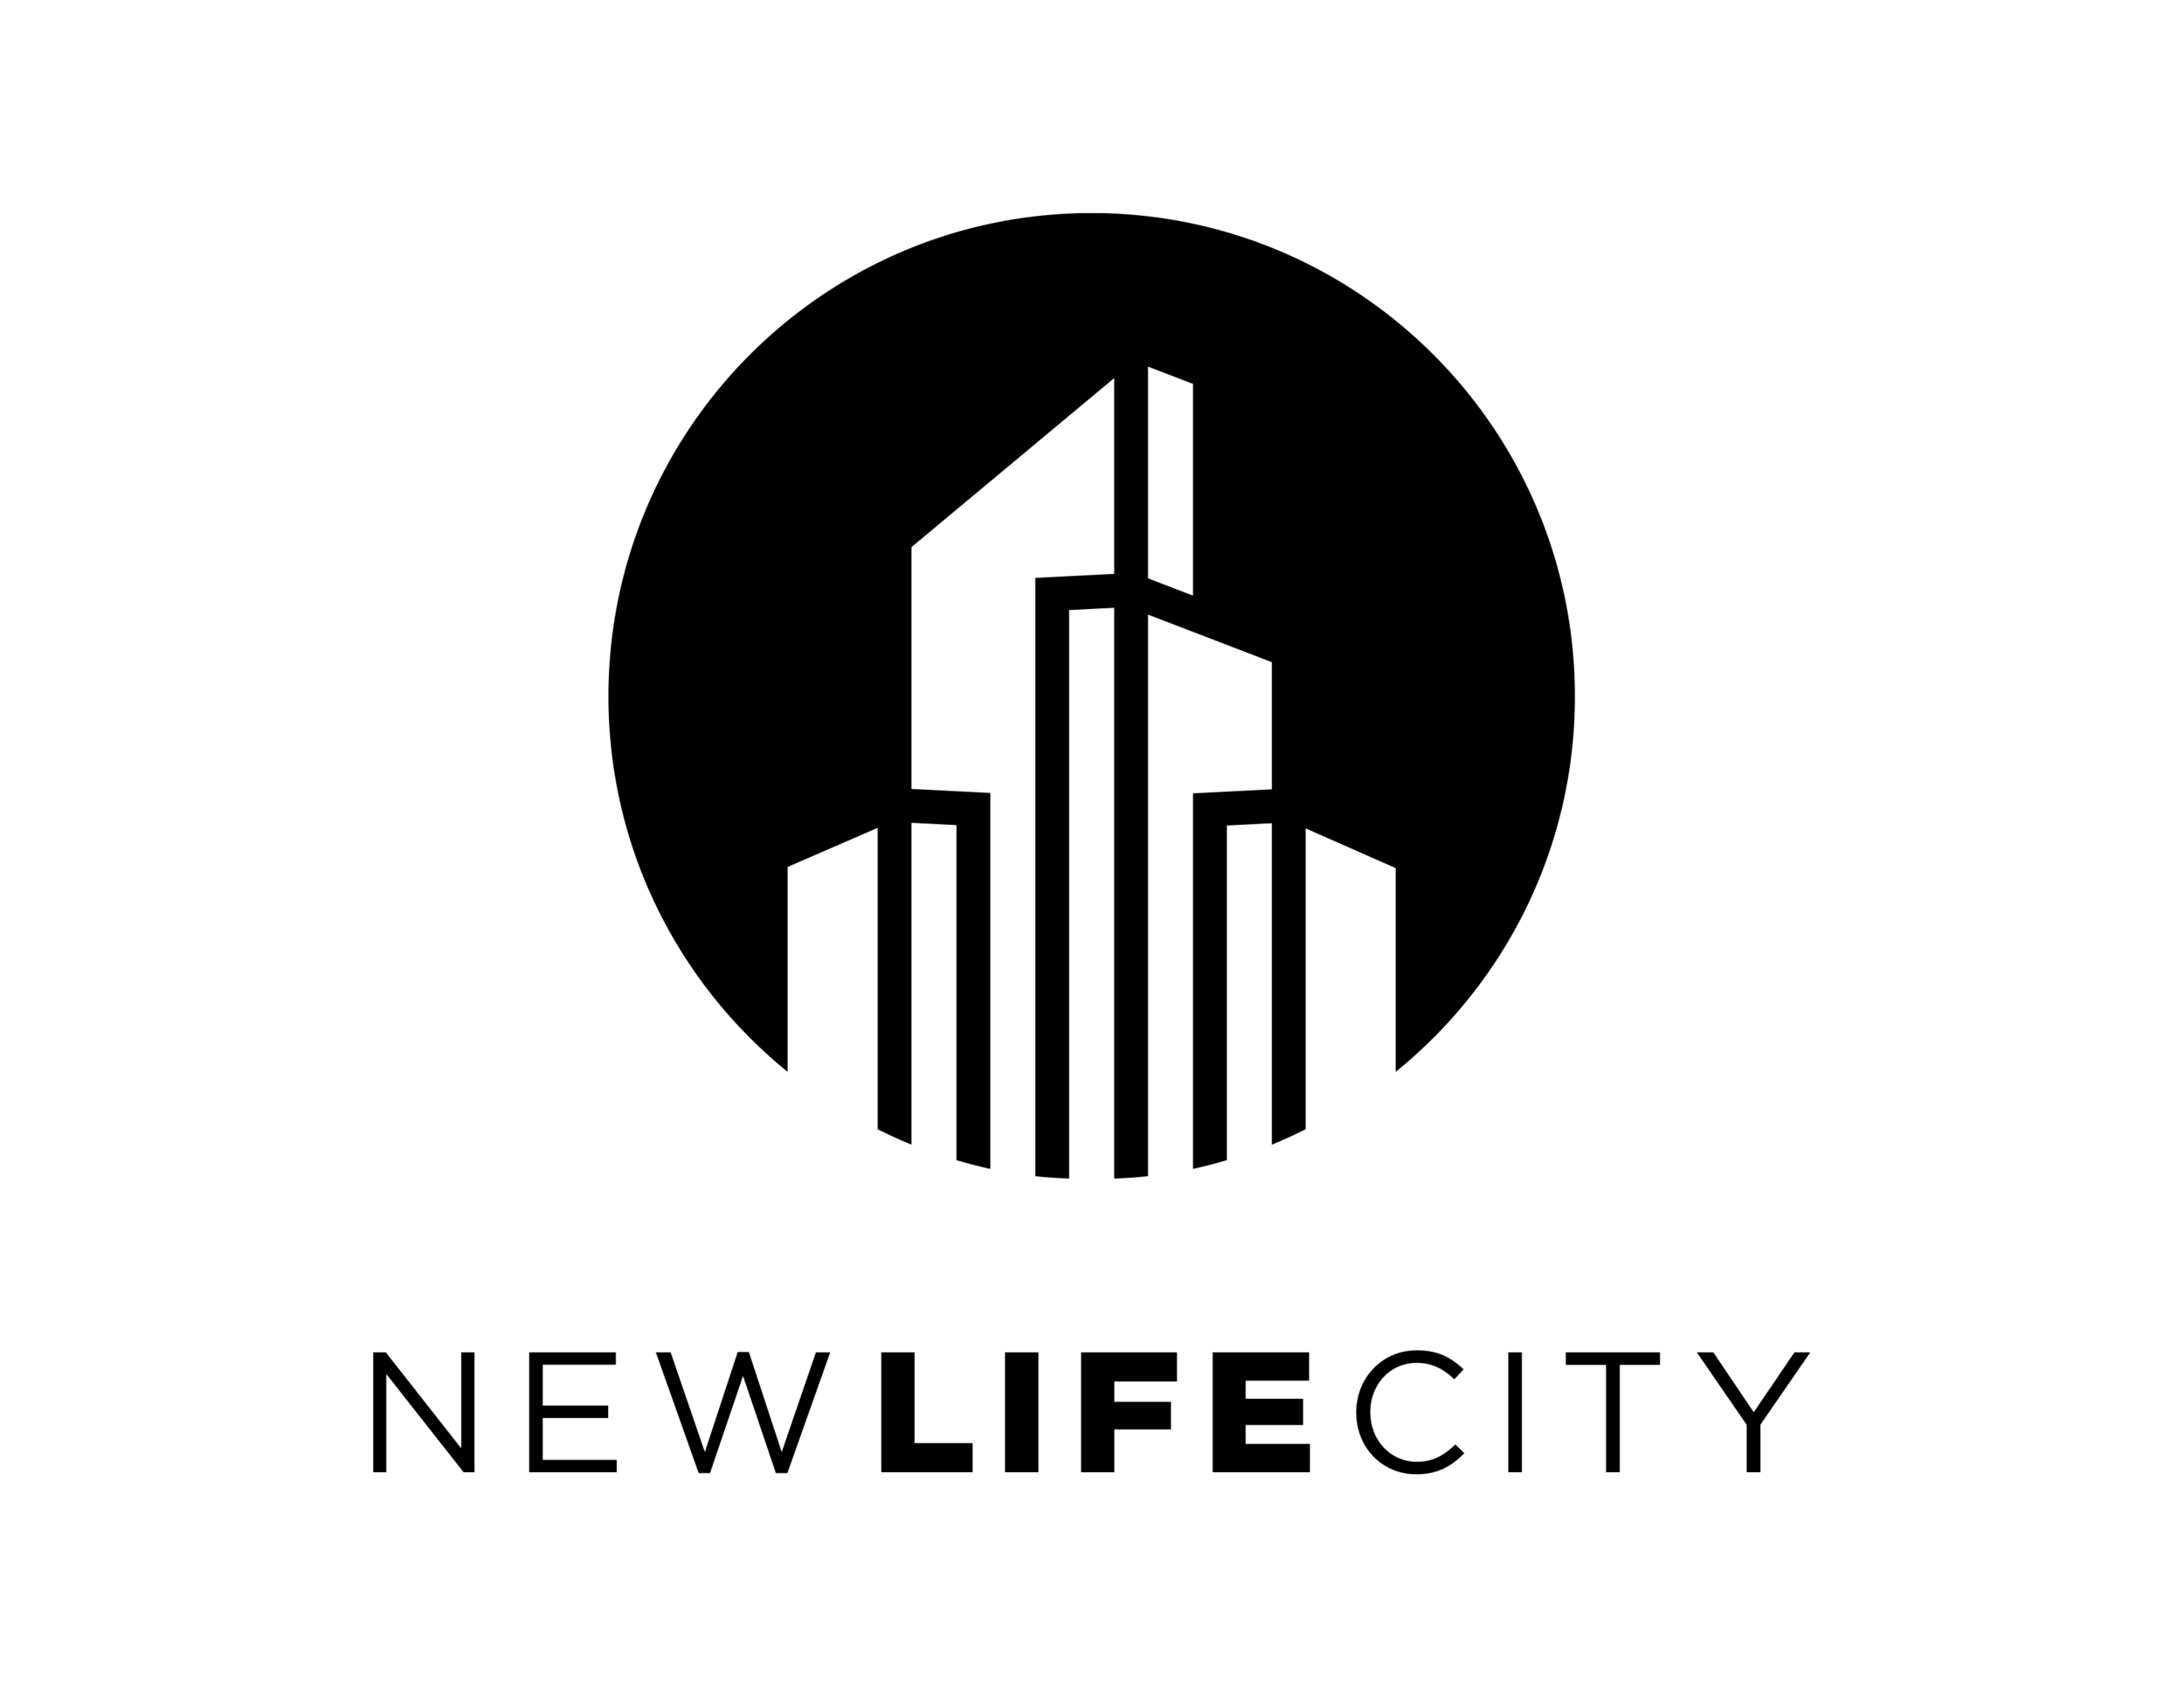 black tansparent logo.png